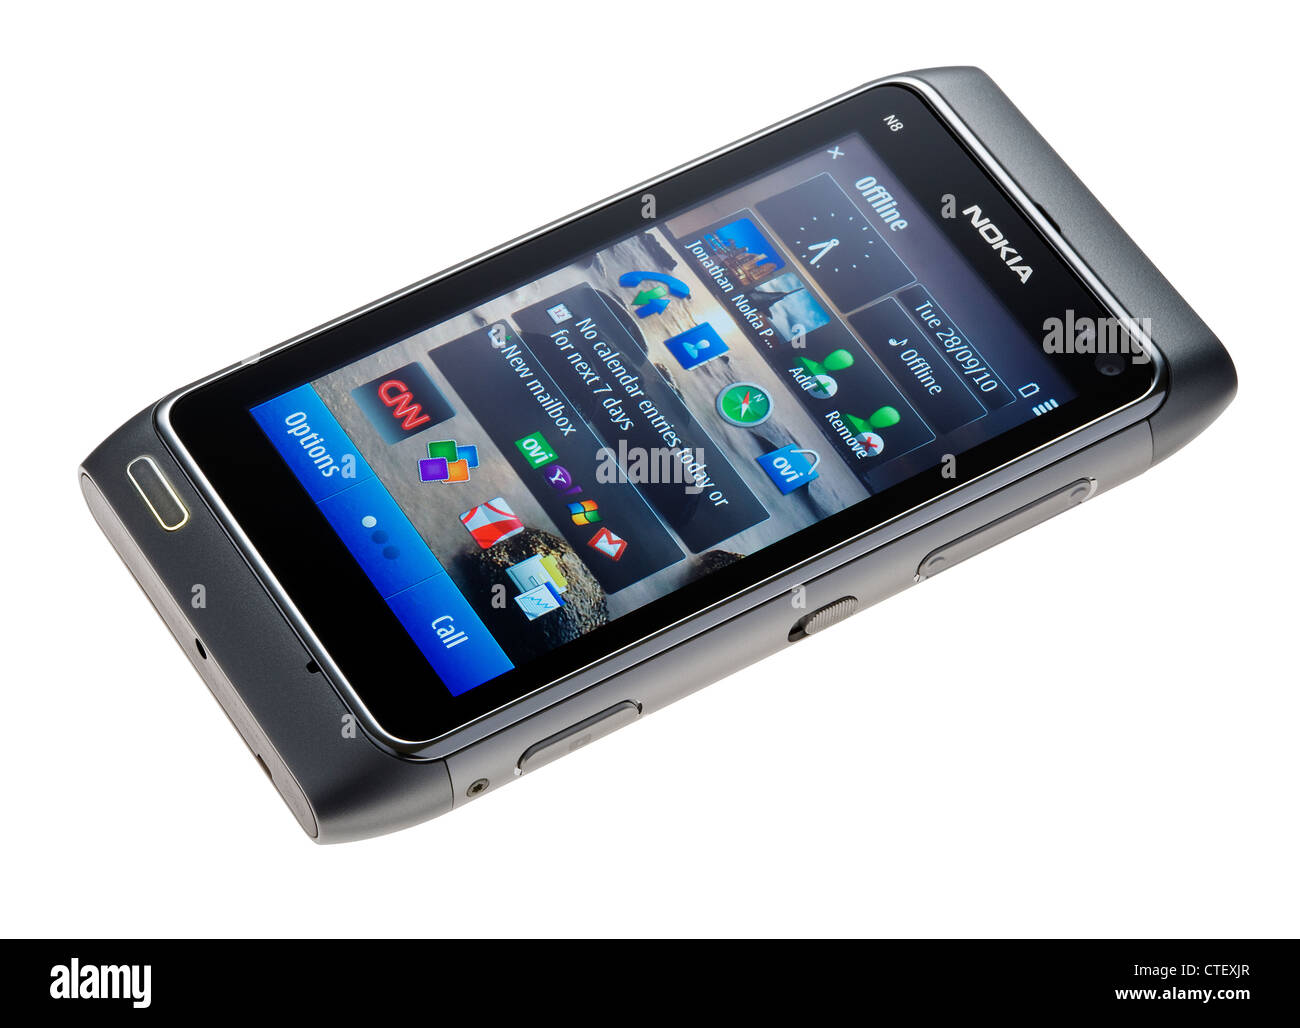 Nokia N8 mobile telephone cellphone - Stock Image